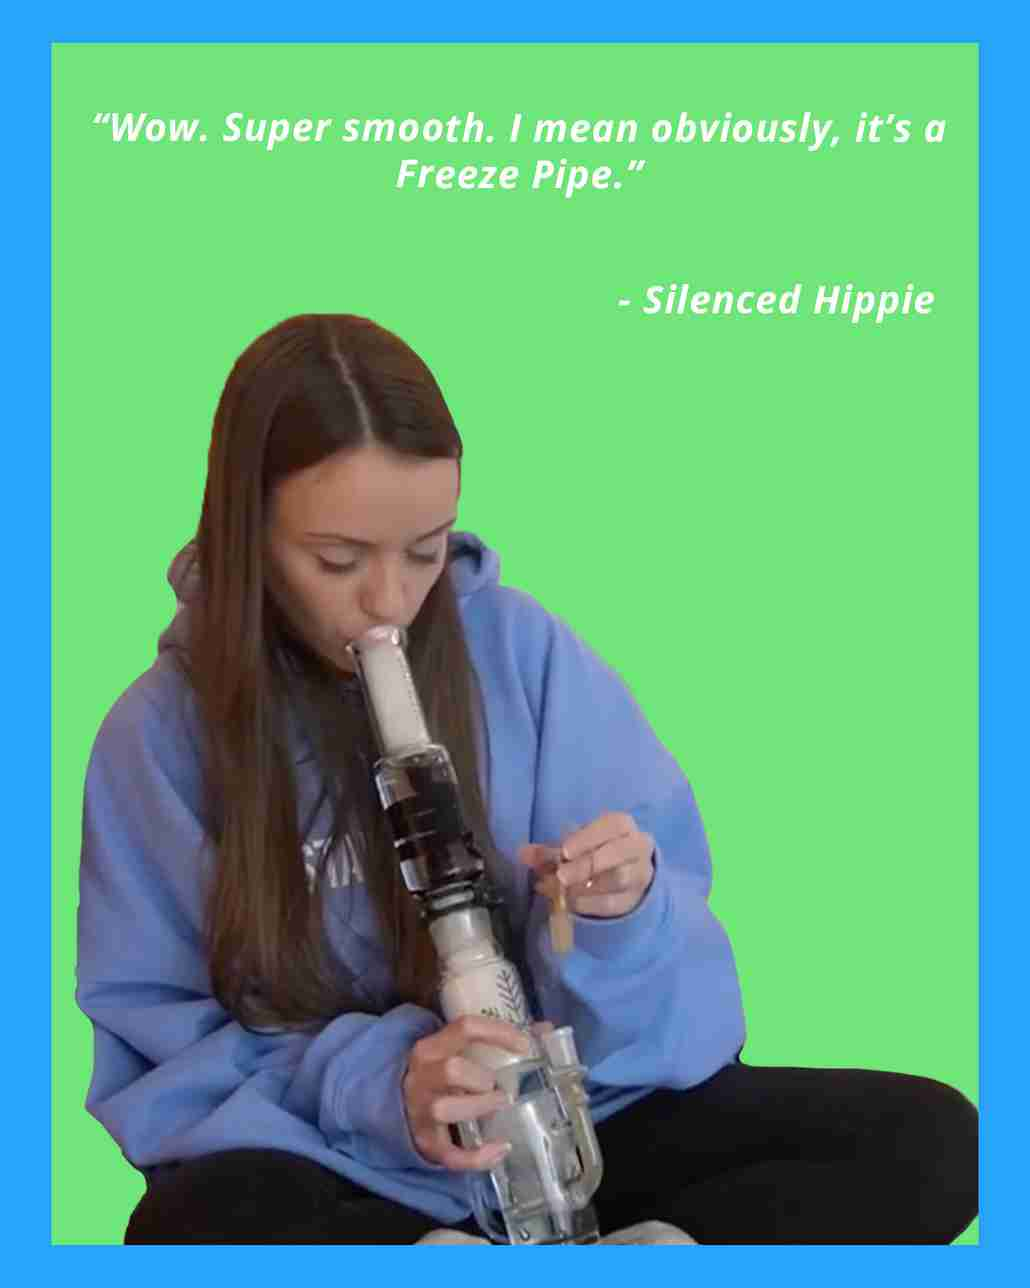 silenced hippie smokes water bong